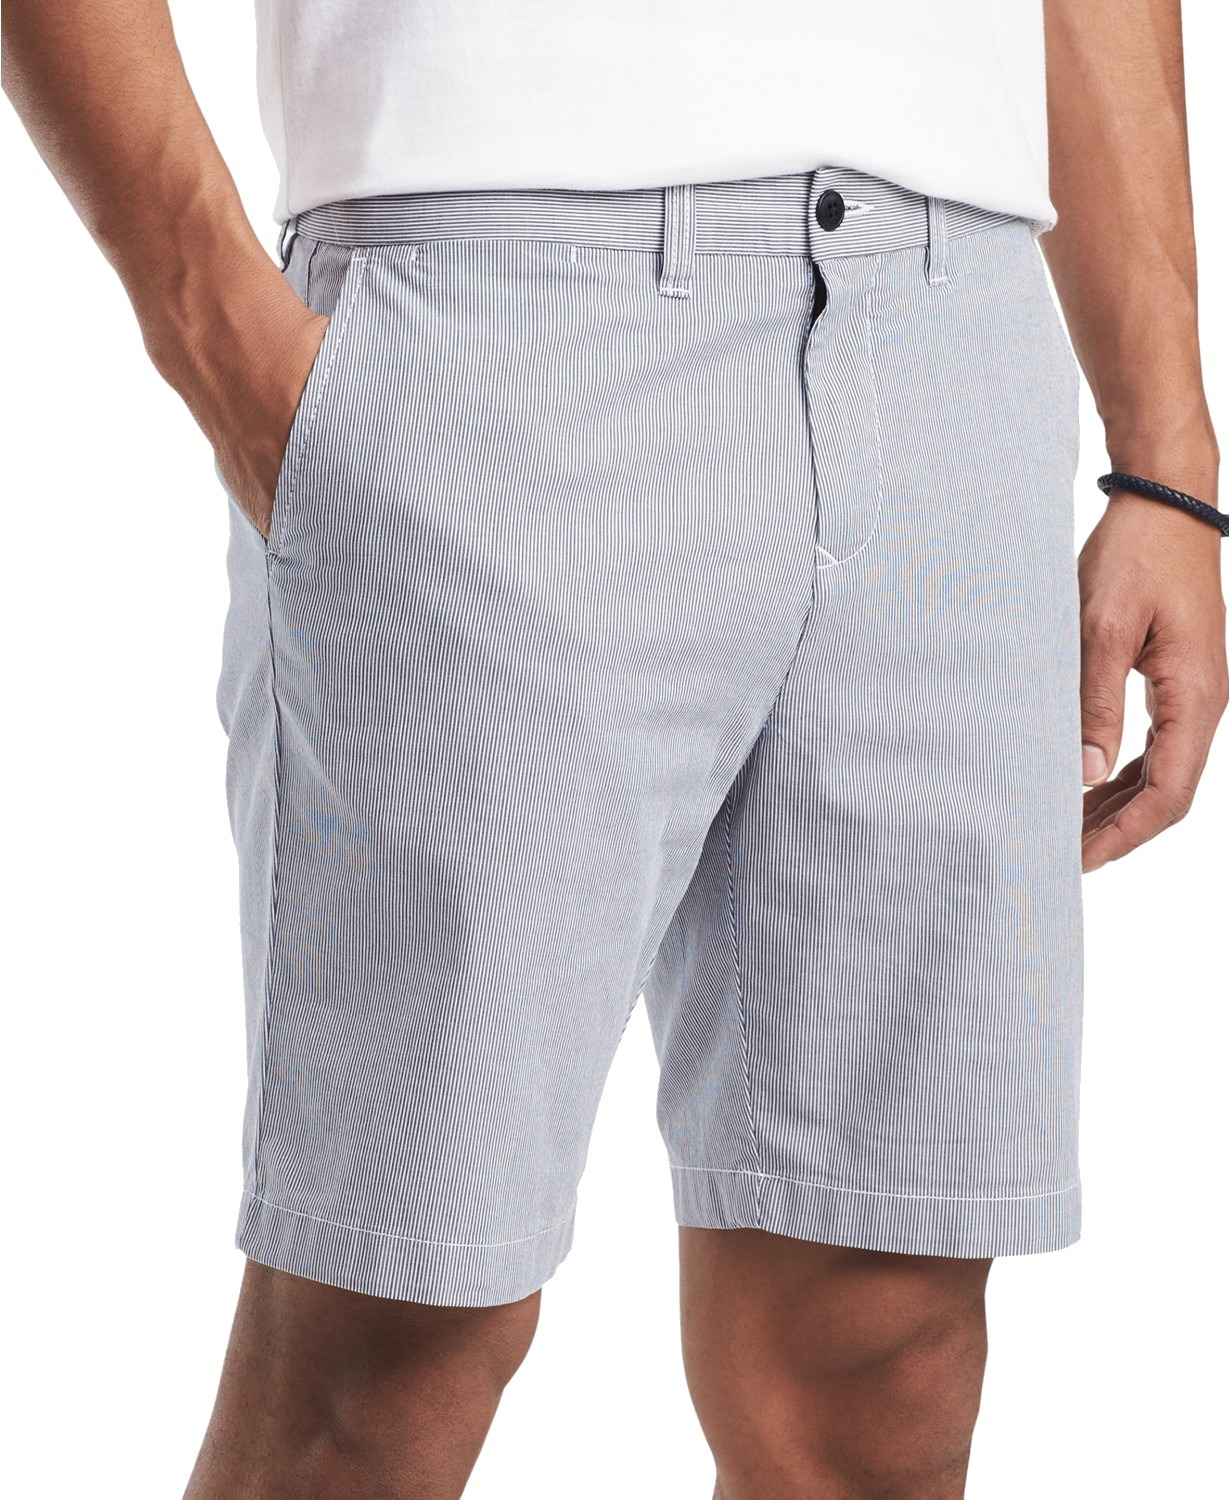 New-Tommy-Hilfiger-NEW-Blue-White-Mens-Size-34-Striped-Flat-Front-Shorts-49-324